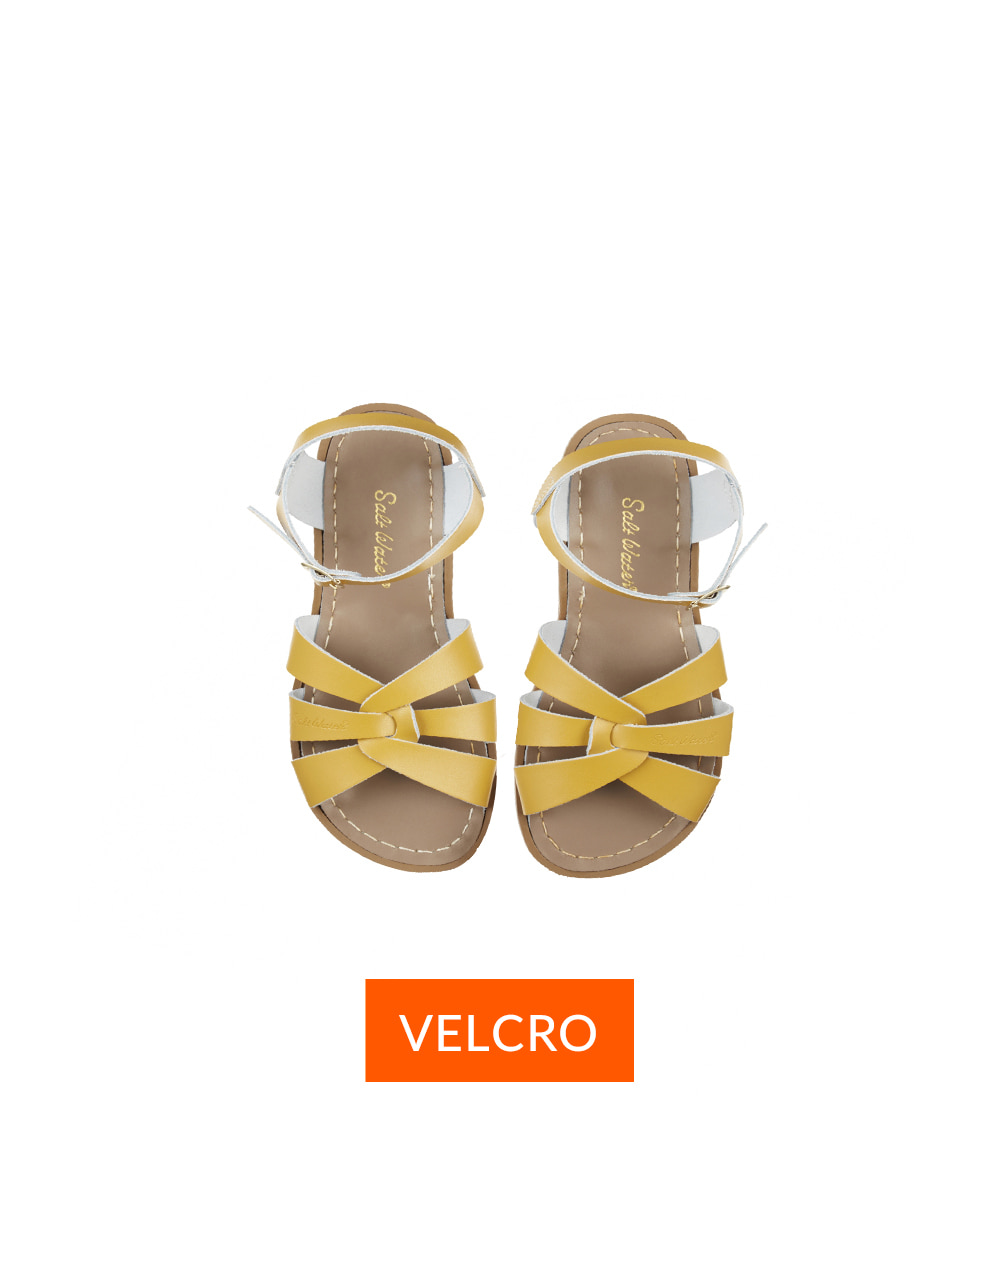 SALT-WATER SANDAL  CHILD VELCRO ORIGINAL  Mustard